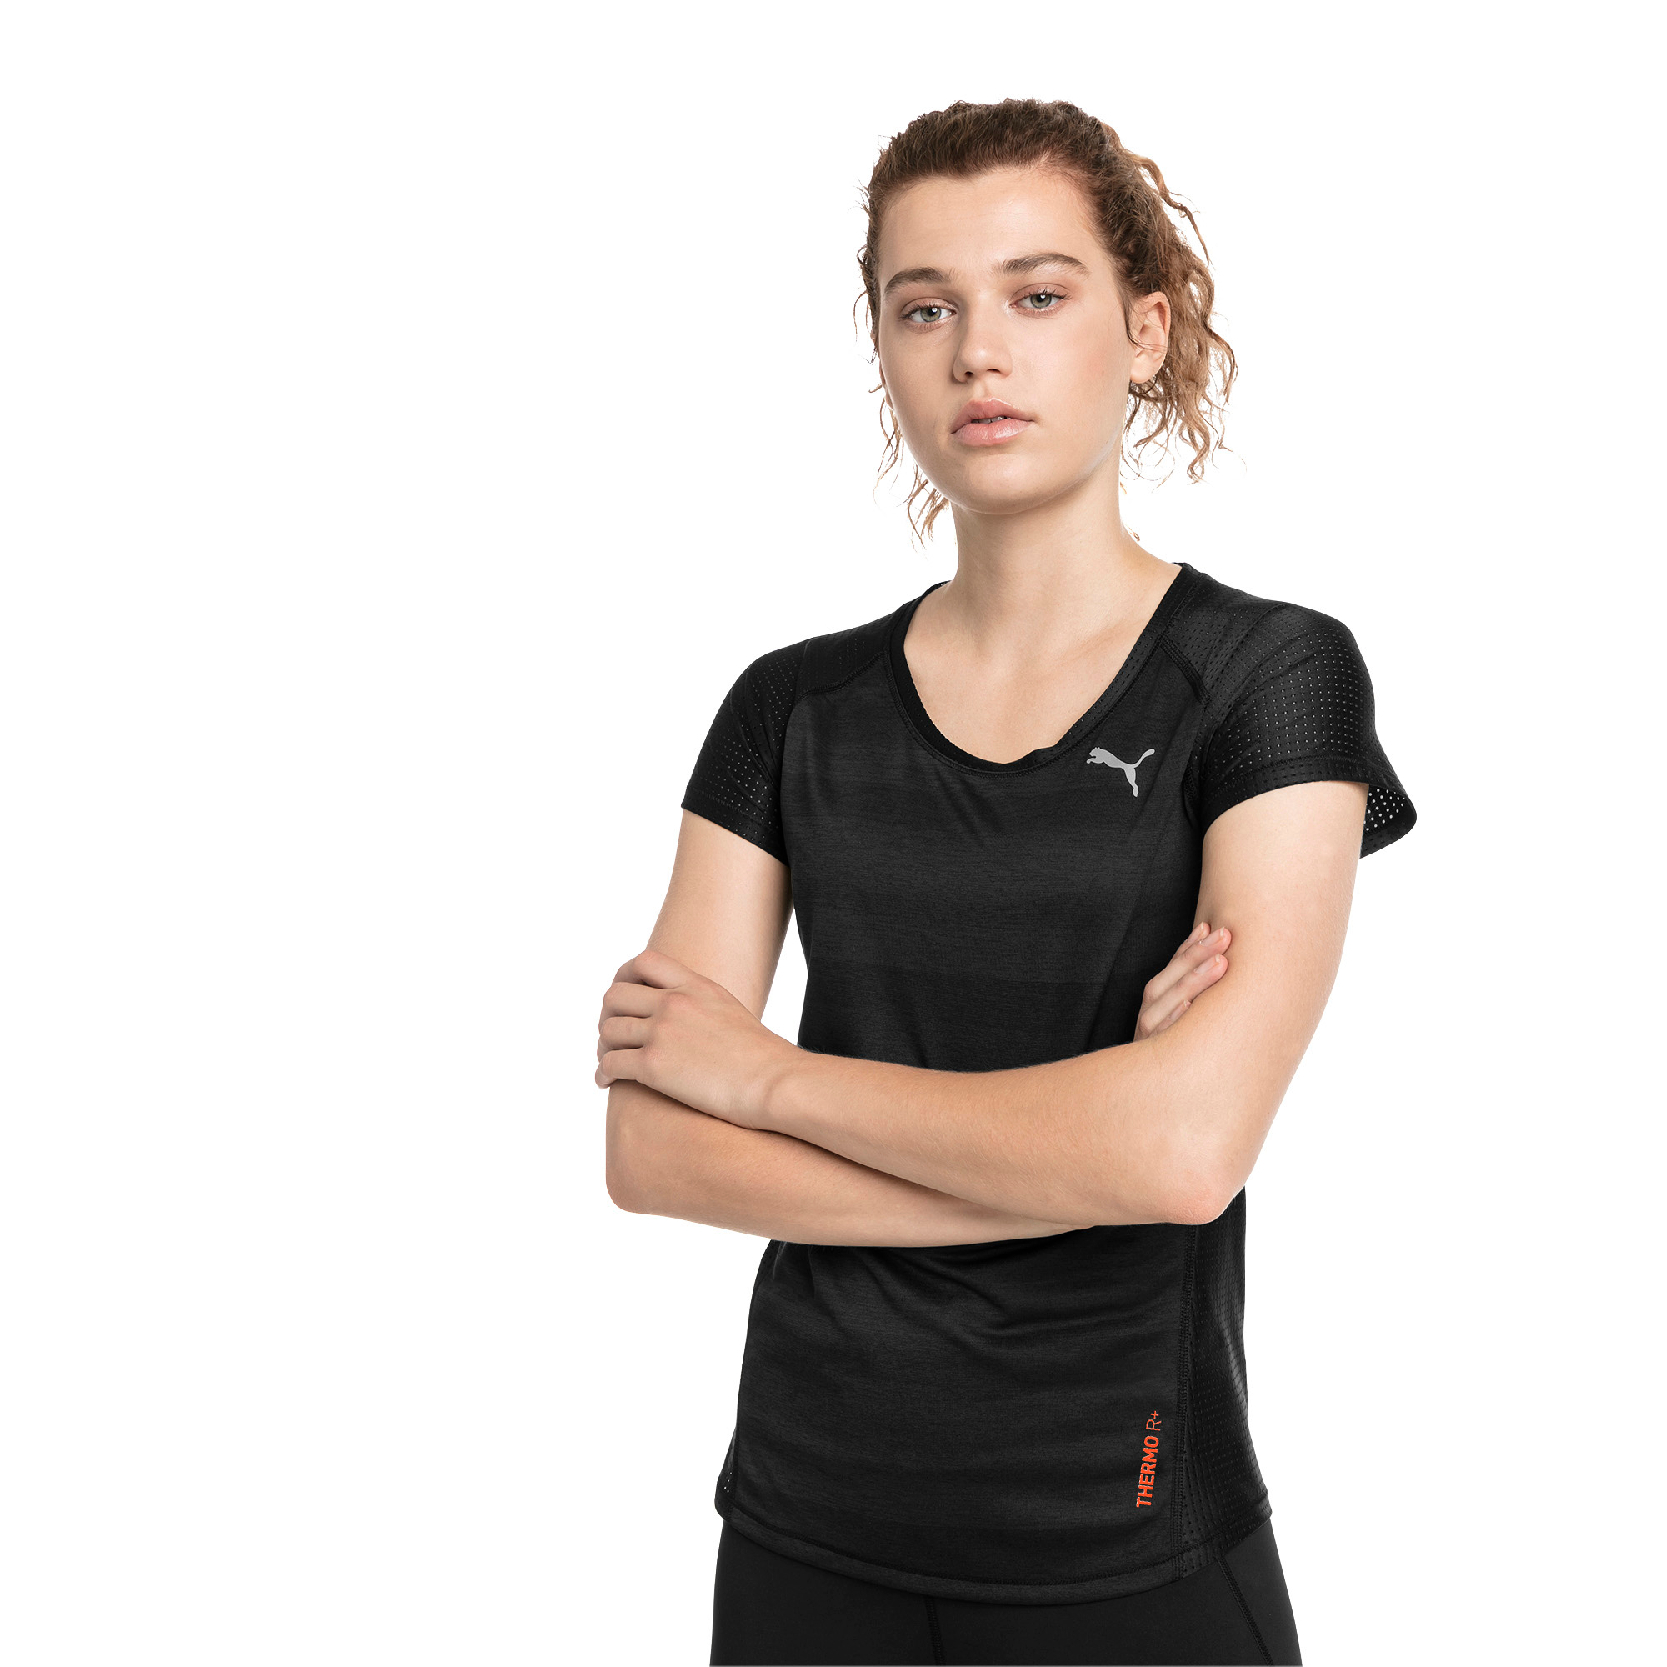 Puma Thermo-R+ S S Tee Women Run Training Tshirt 517449-01